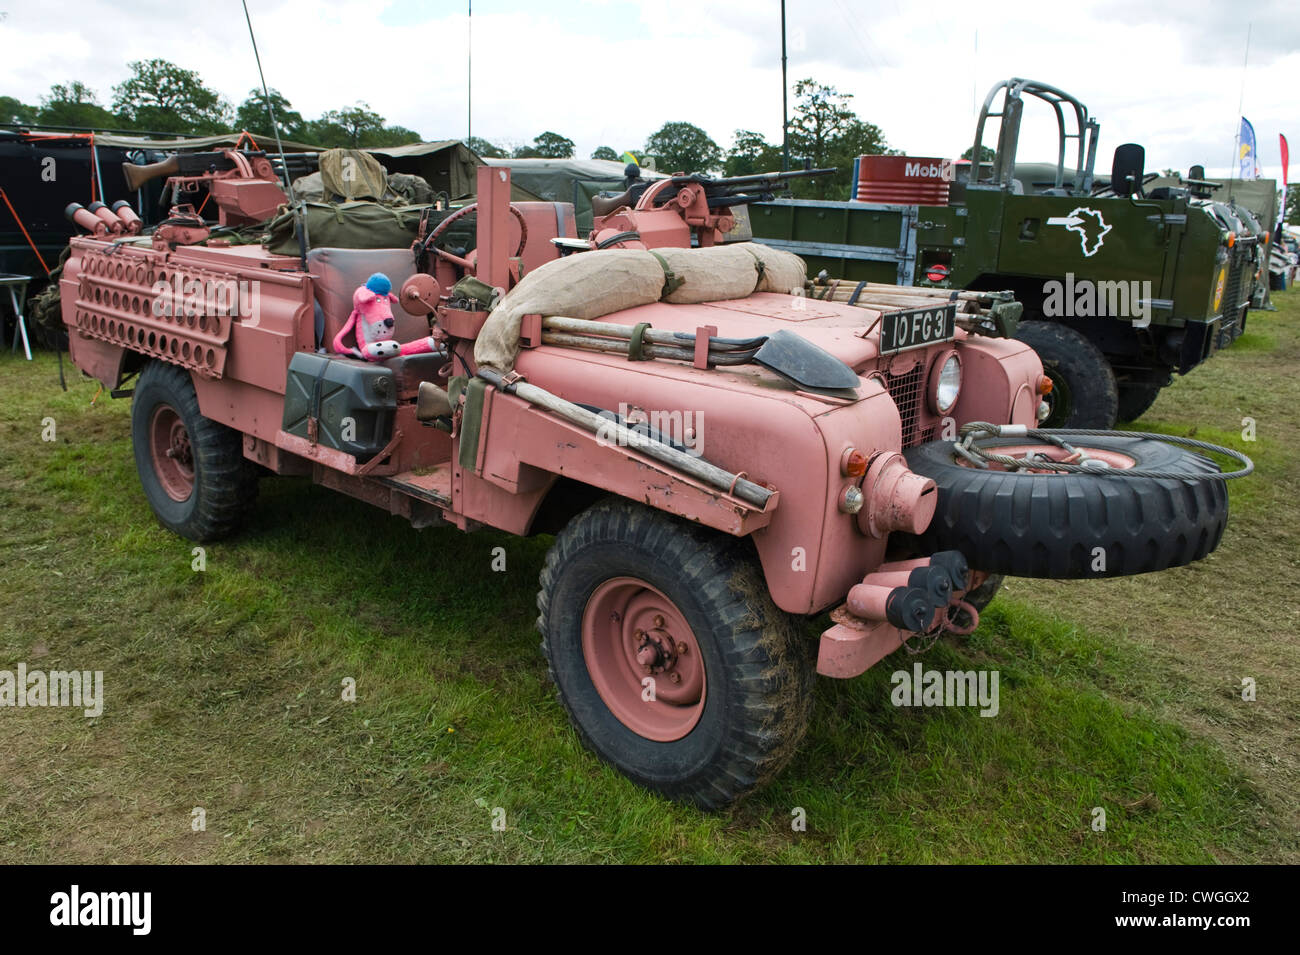 Land Rover 4x4 Sas Special Forces Pink Panther Military